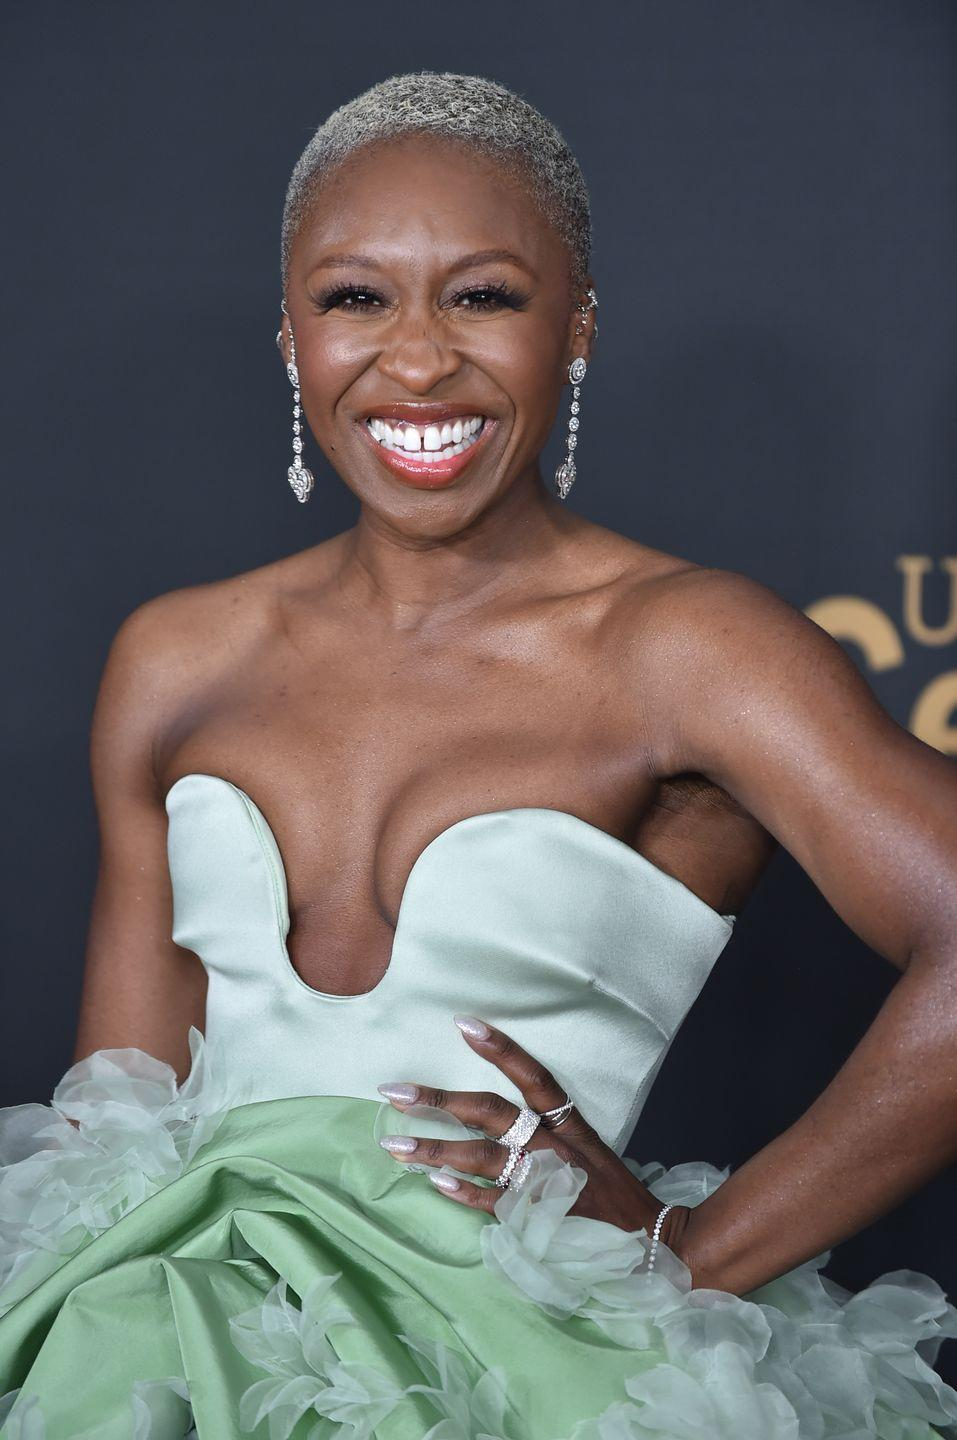 """<p>Actress <strong>Cynthia Erivo</strong> is one of our fave hair color chameleons, donning a silvery hued pixie cut that is truly stunning. </p><p><strong>RELATED: </strong><a href=""""https://www.goodhousekeeping.com/beauty/hair/a46081/transitioning-from-color-to-gray-hair/"""" rel=""""nofollow noopener"""" target=""""_blank"""" data-ylk=""""slk:5 Things to Know Before You Transition Your Dyed Hair to Natural Gray"""" class=""""link rapid-noclick-resp"""">5 Things to Know Before You Transition Your Dyed Hair to Natural Gray</a></p>"""